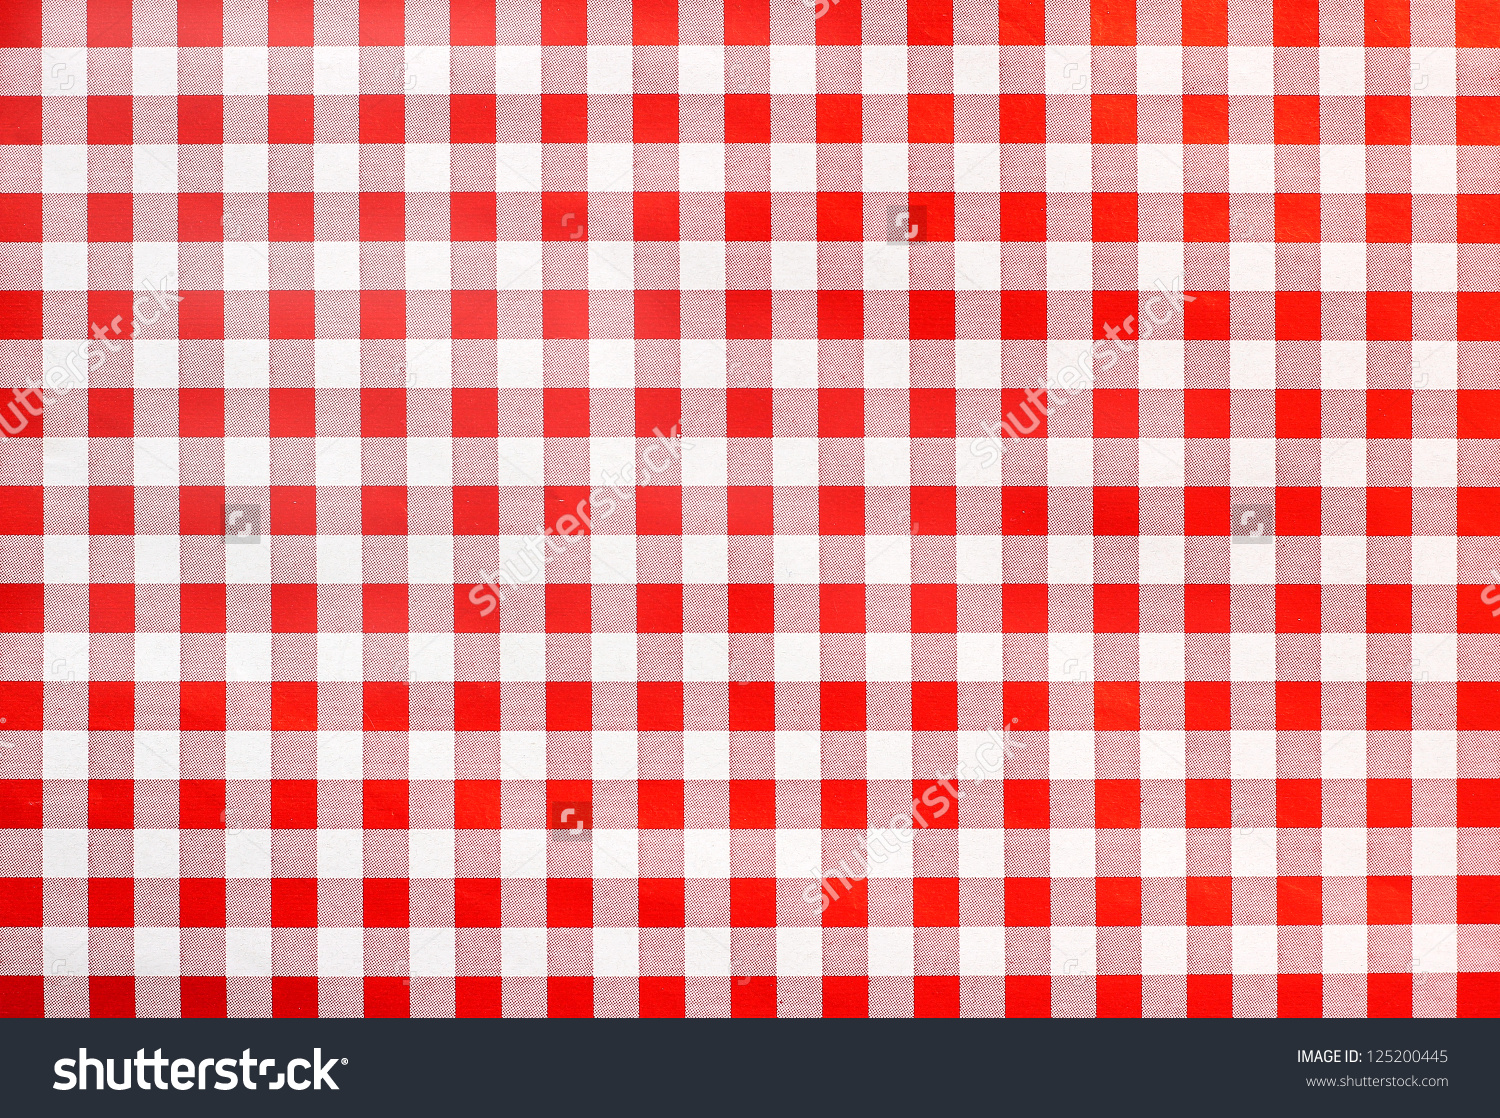 Red Checkered Background Clipart 20 Free Cliparts